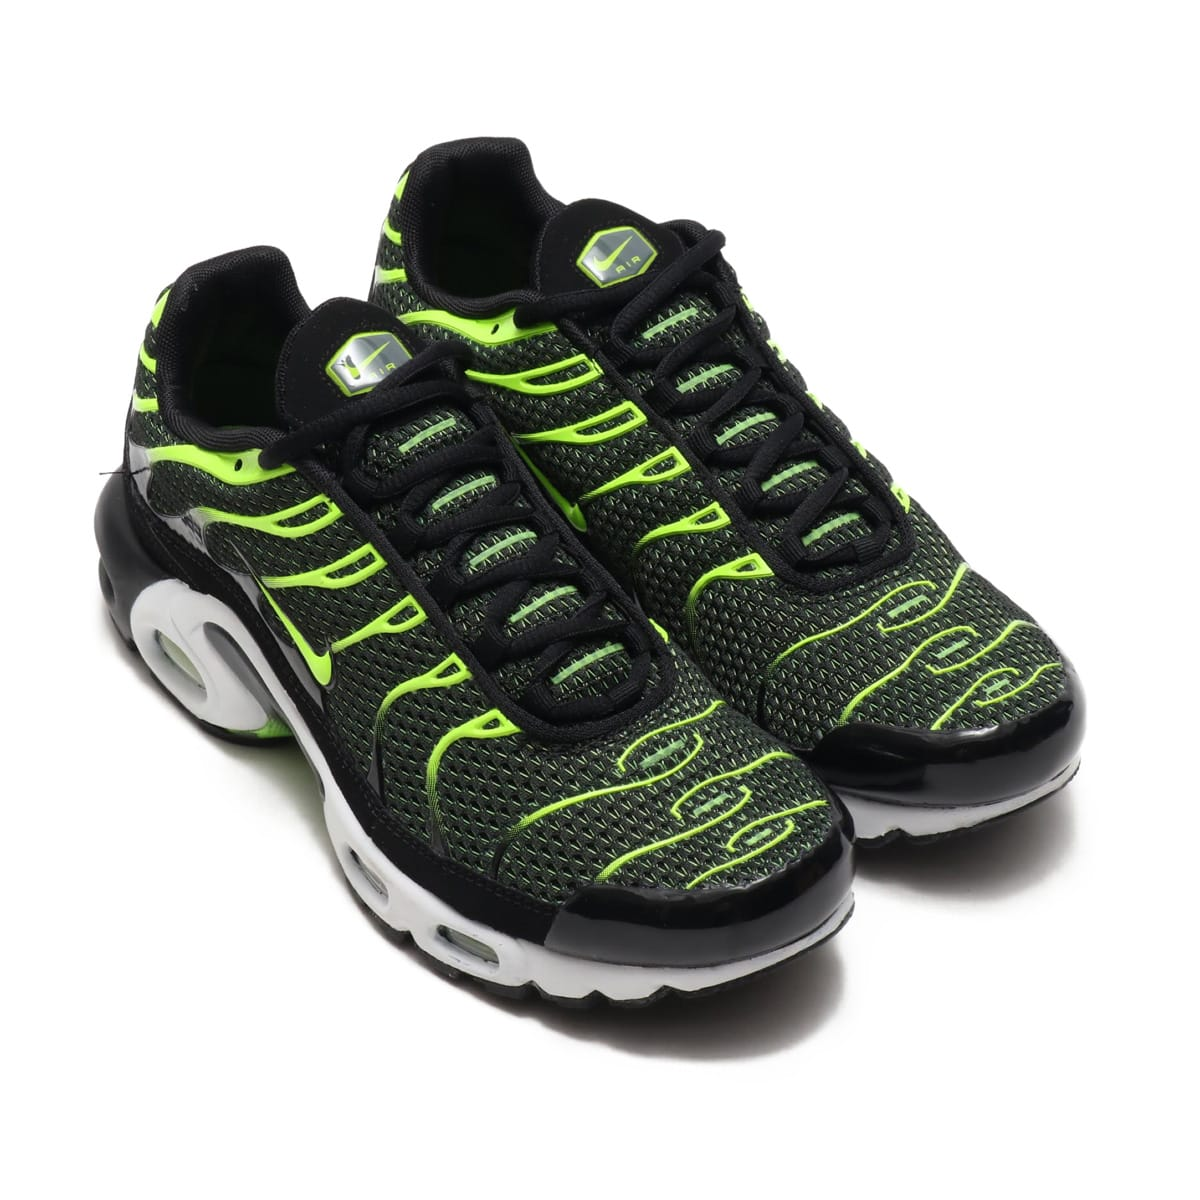 NIKE AIR MAX PLUS BLACK/VOLT-DARK GREY-WHITE 18HO-I_photo_large